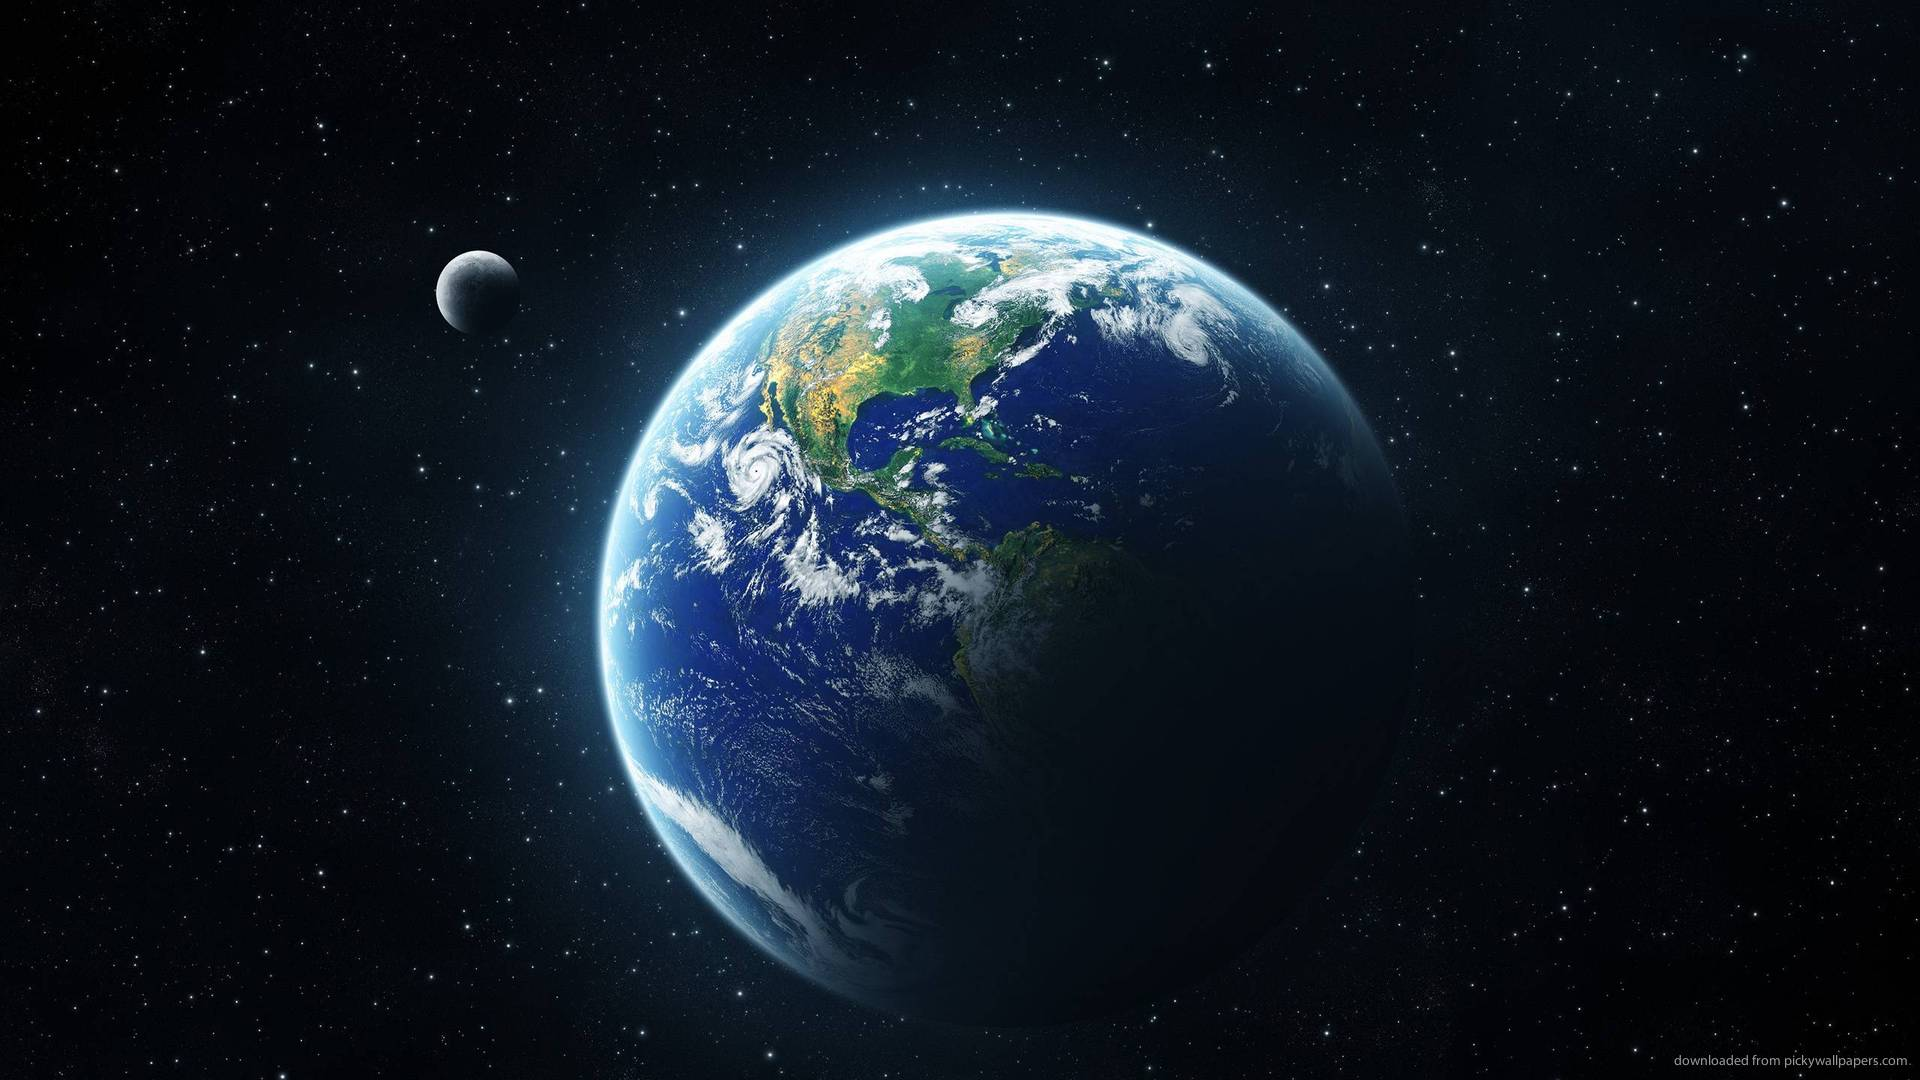 Download 1920x1080 Earth From Space wallpaper 1920x1080